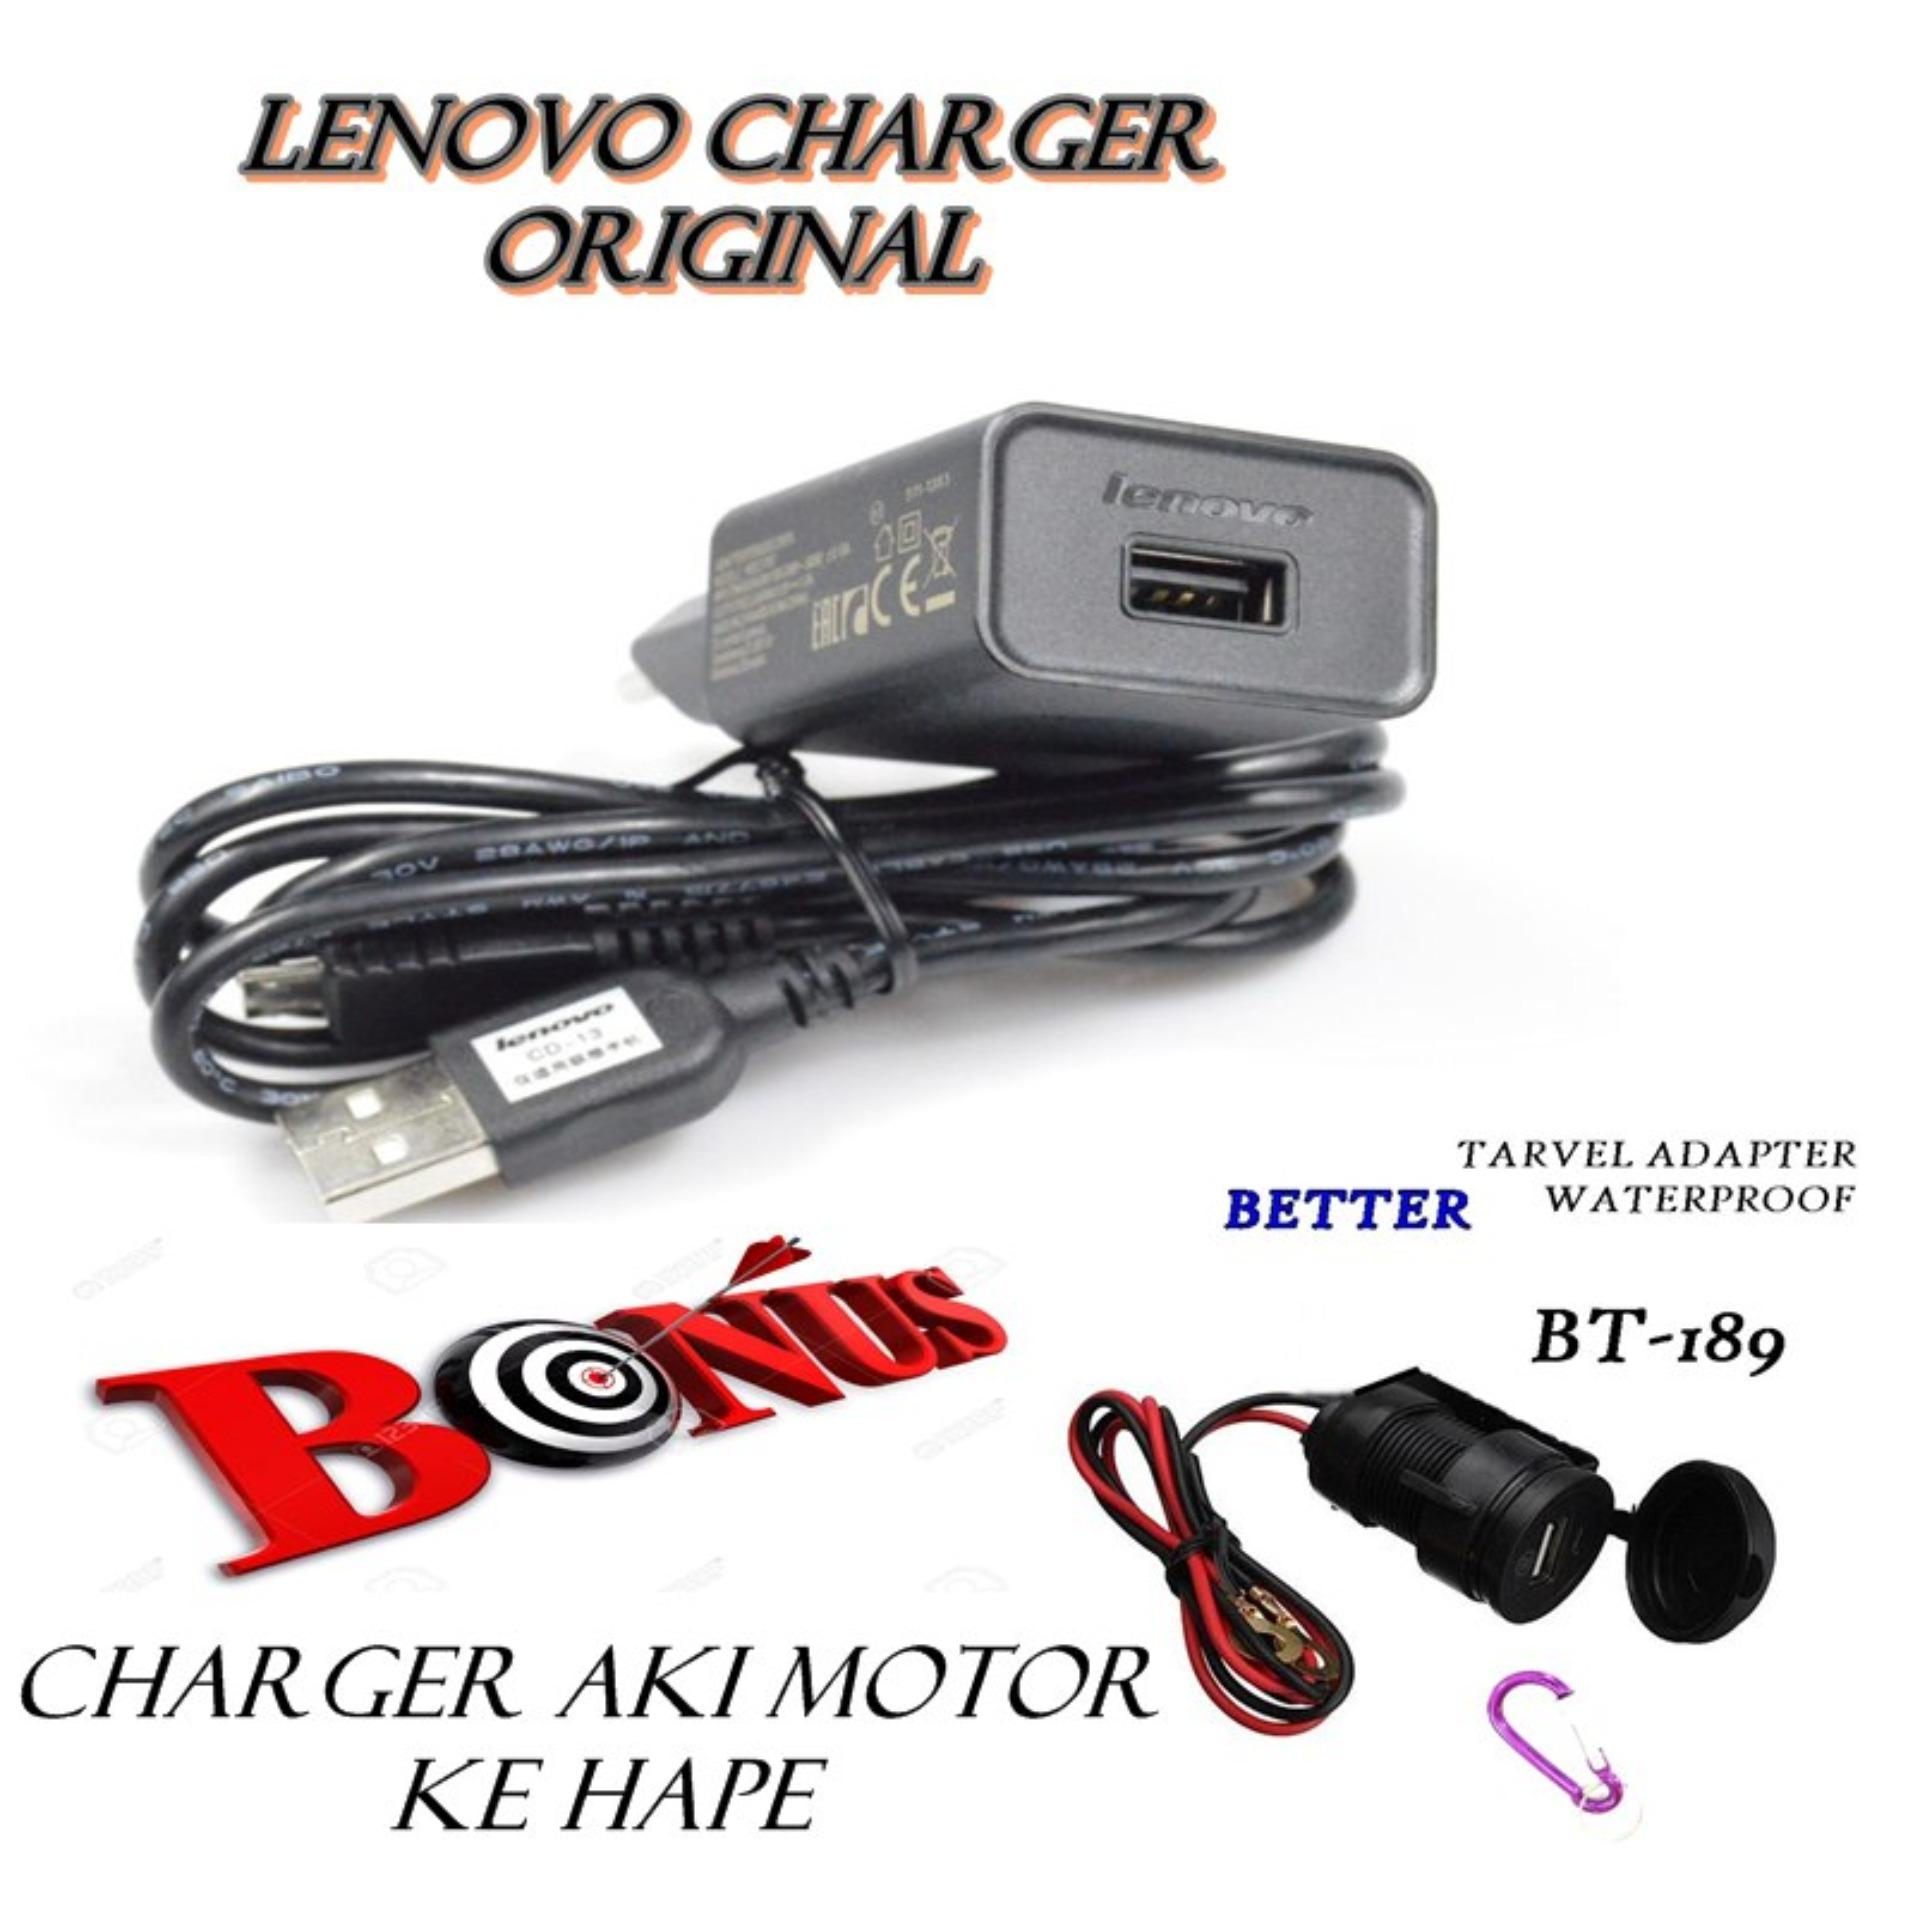 Ulasan Lengkap Tentang Asus Original Travel Charger Dan Kabel Data Micro Usb Special One For Zenfone Gratis Adapter Carger Hape Ke Motor